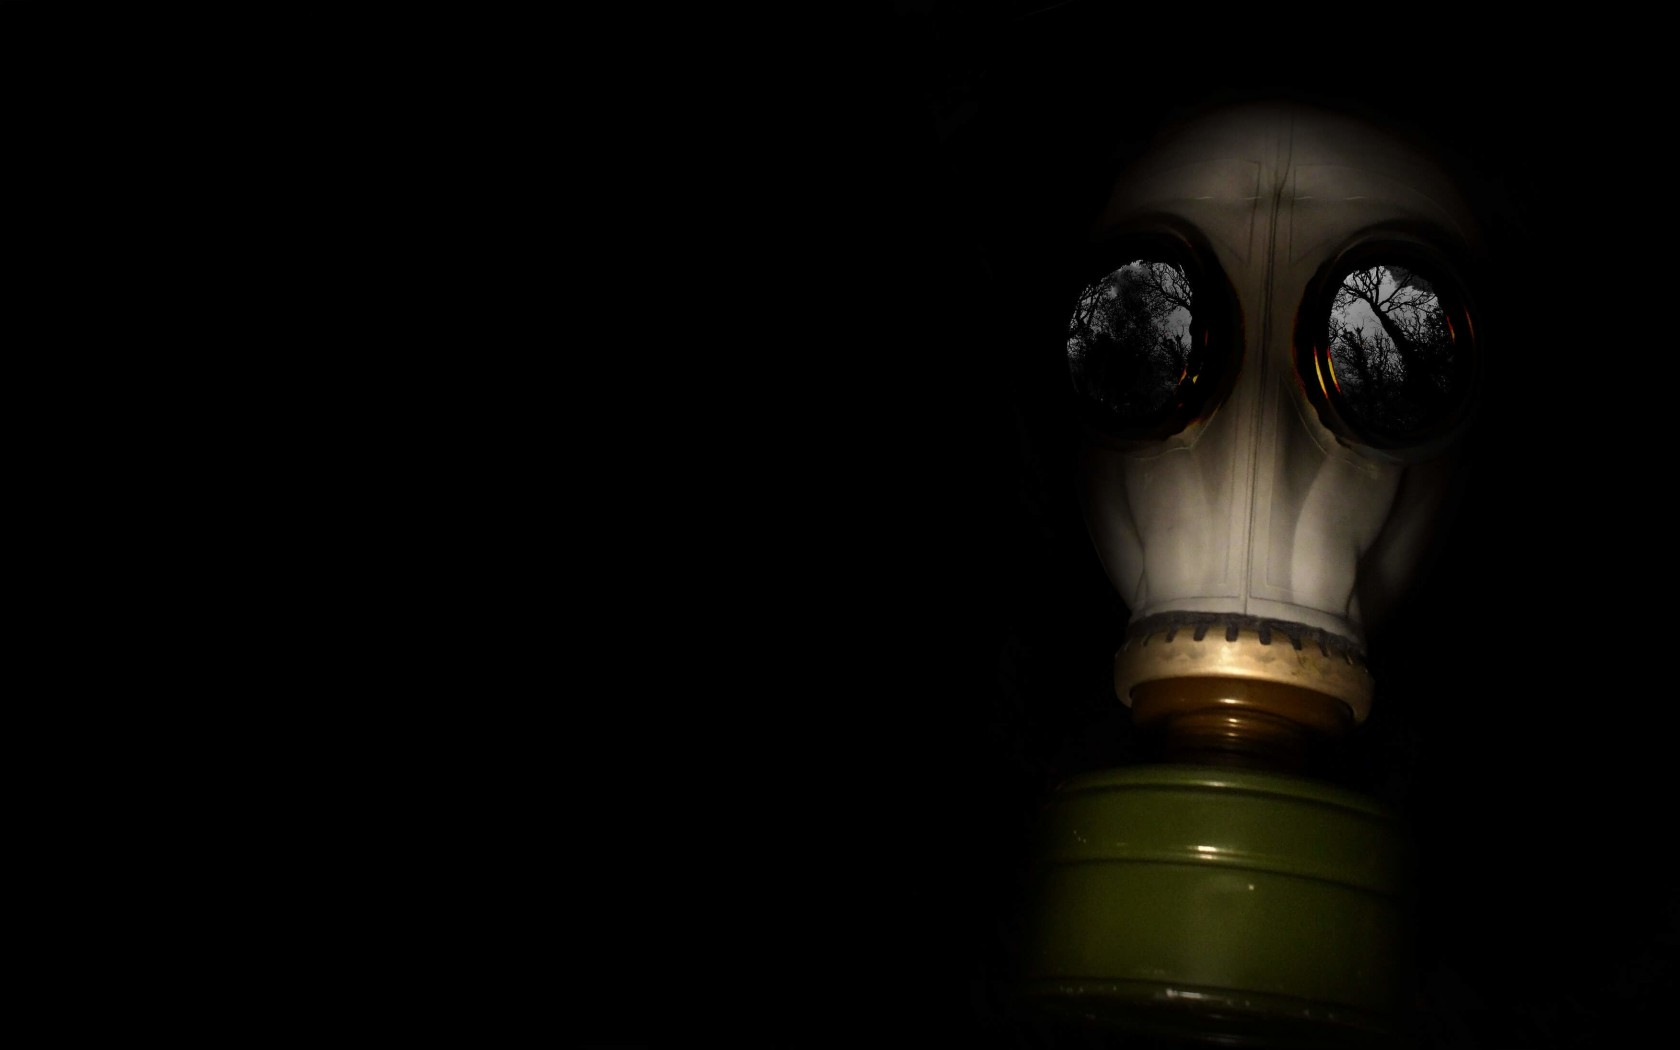 WWII Gas Mask Wallpaper for Desktop 1680x1050